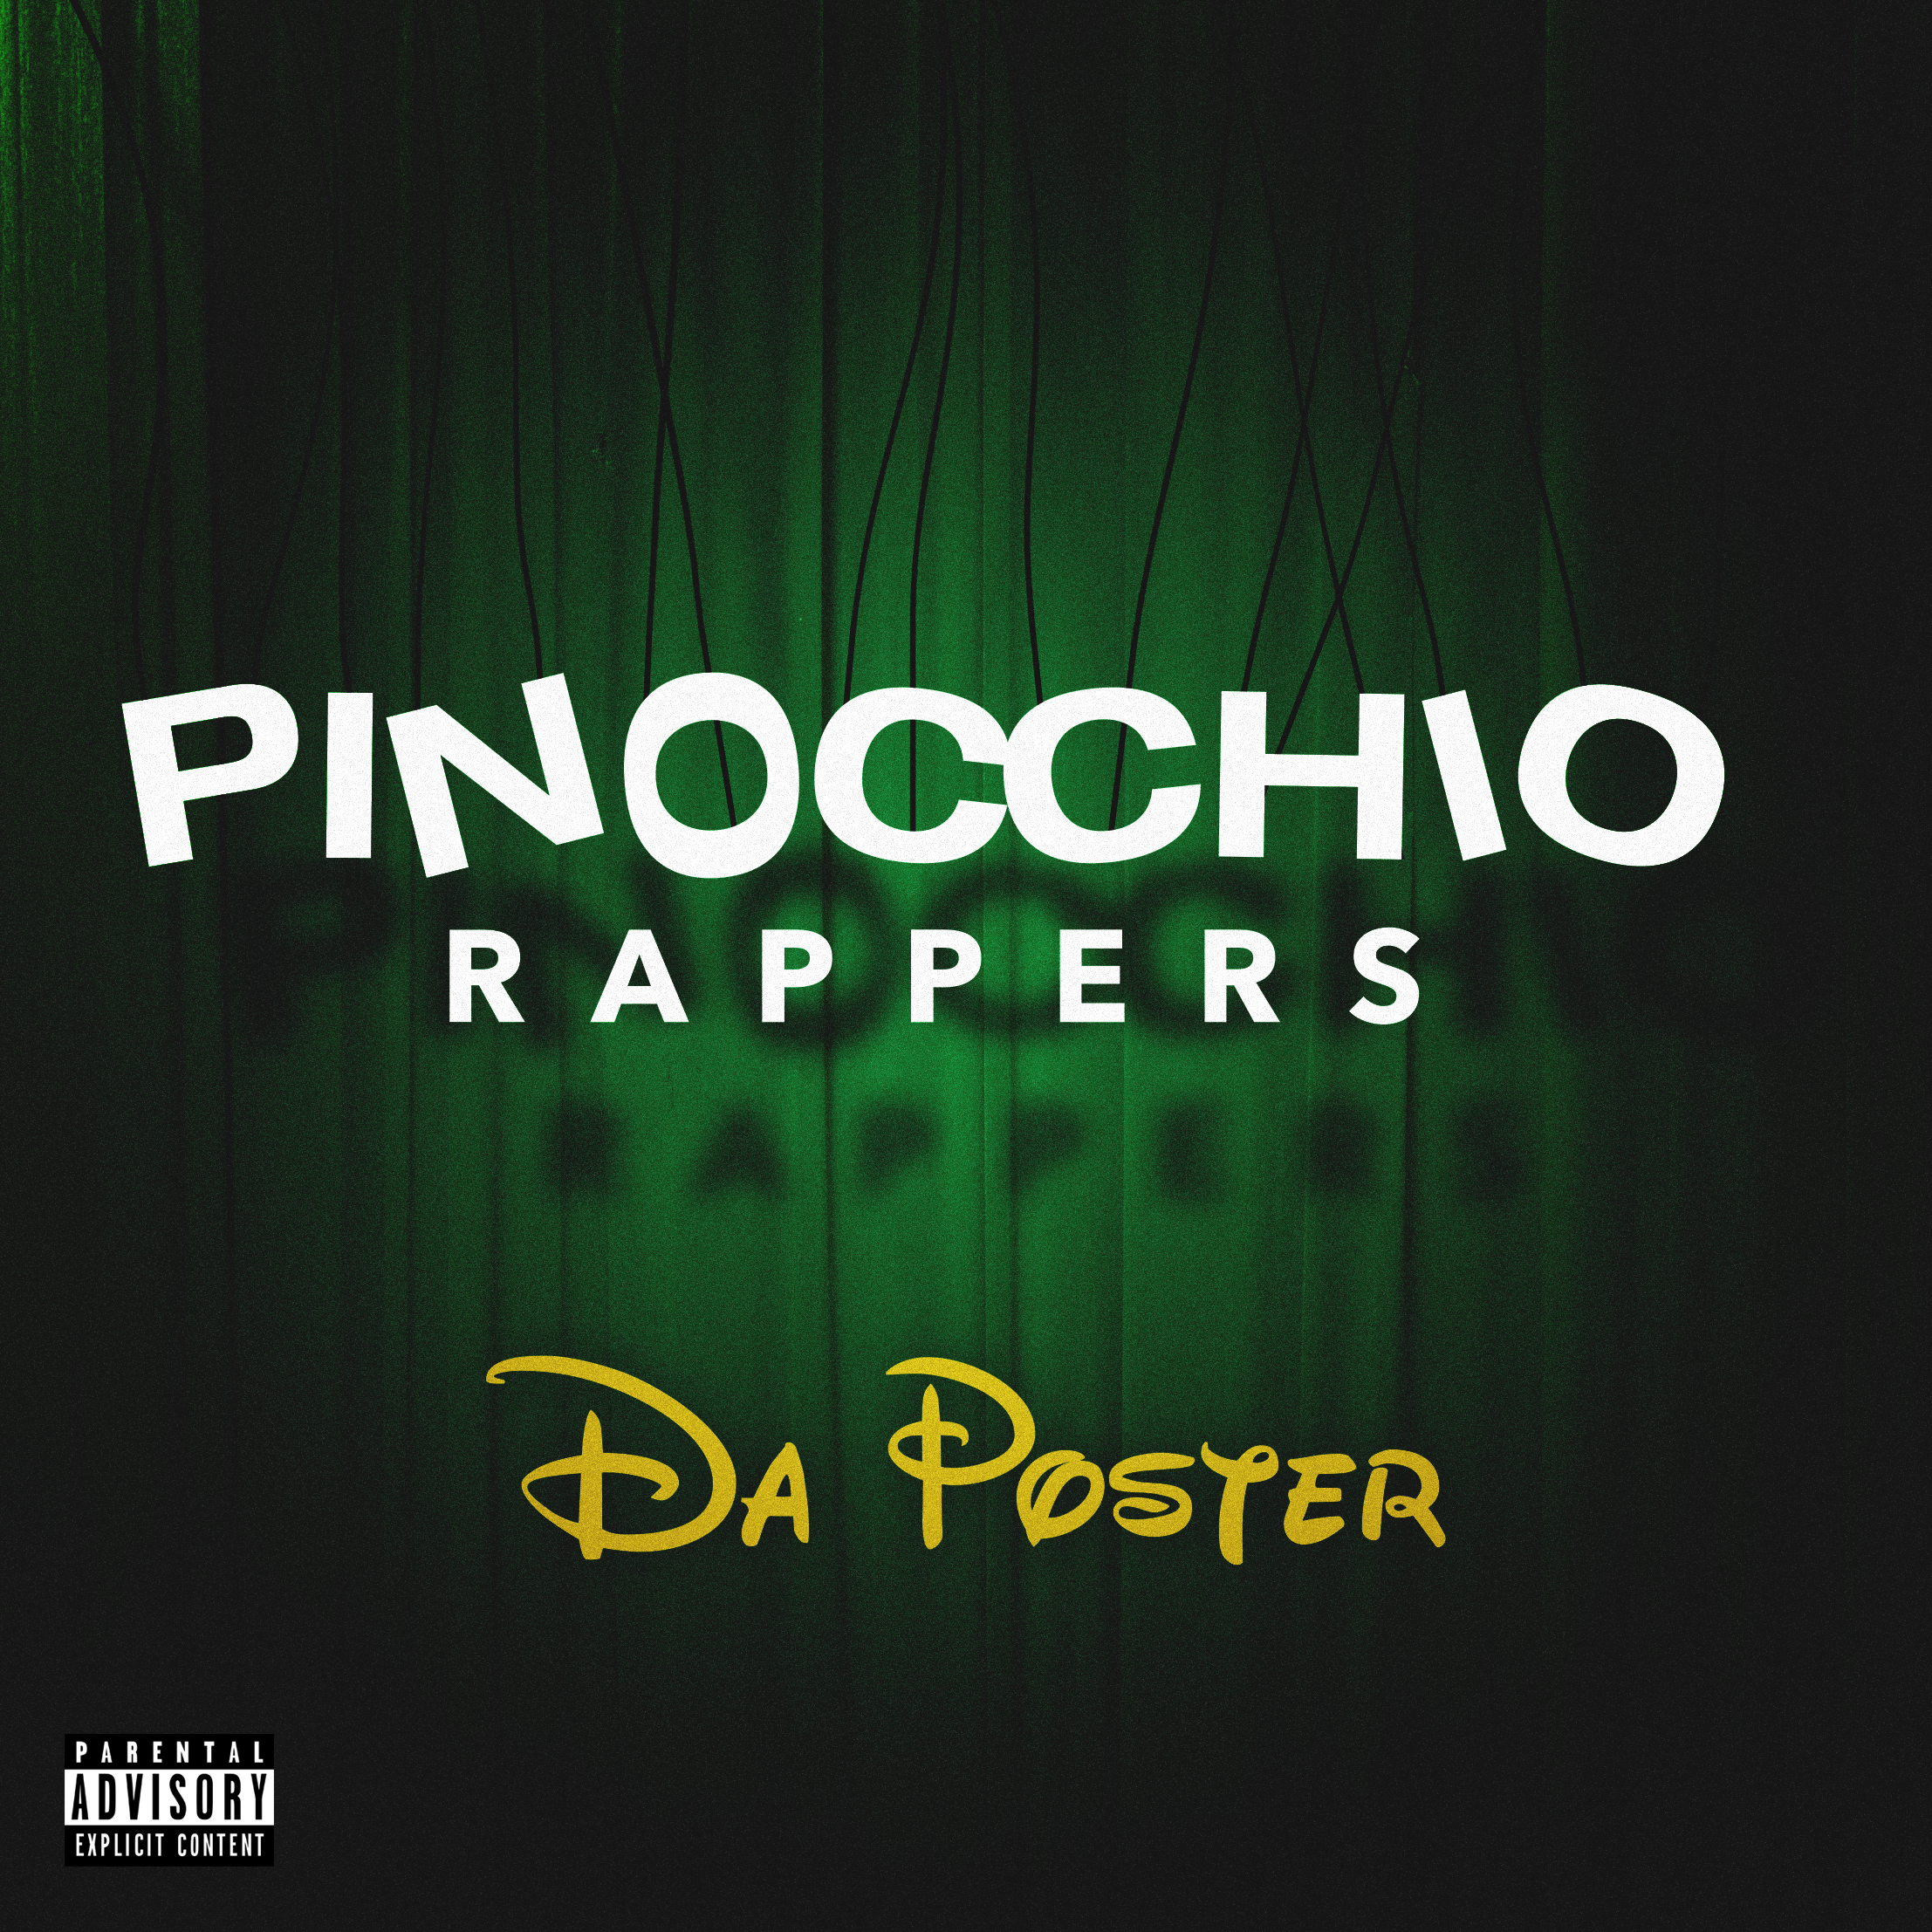 Pinocchio rappers .png